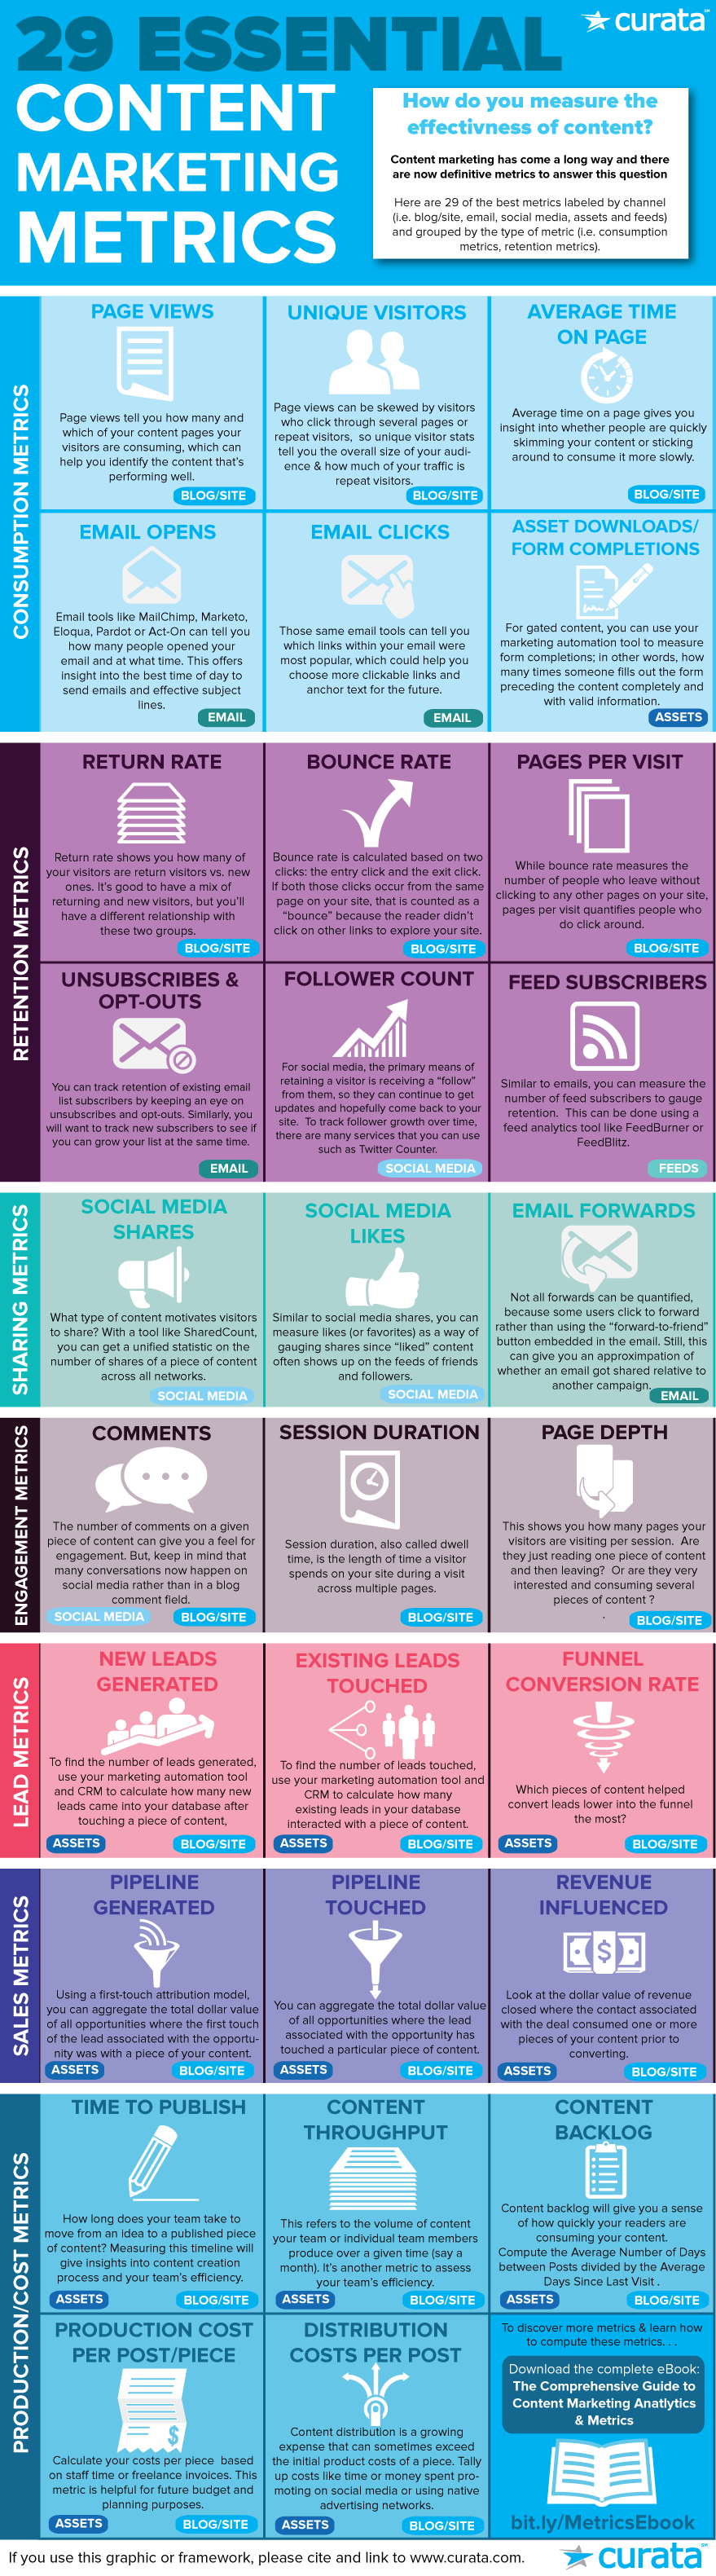 29-essential-content-marketing-metrics.png